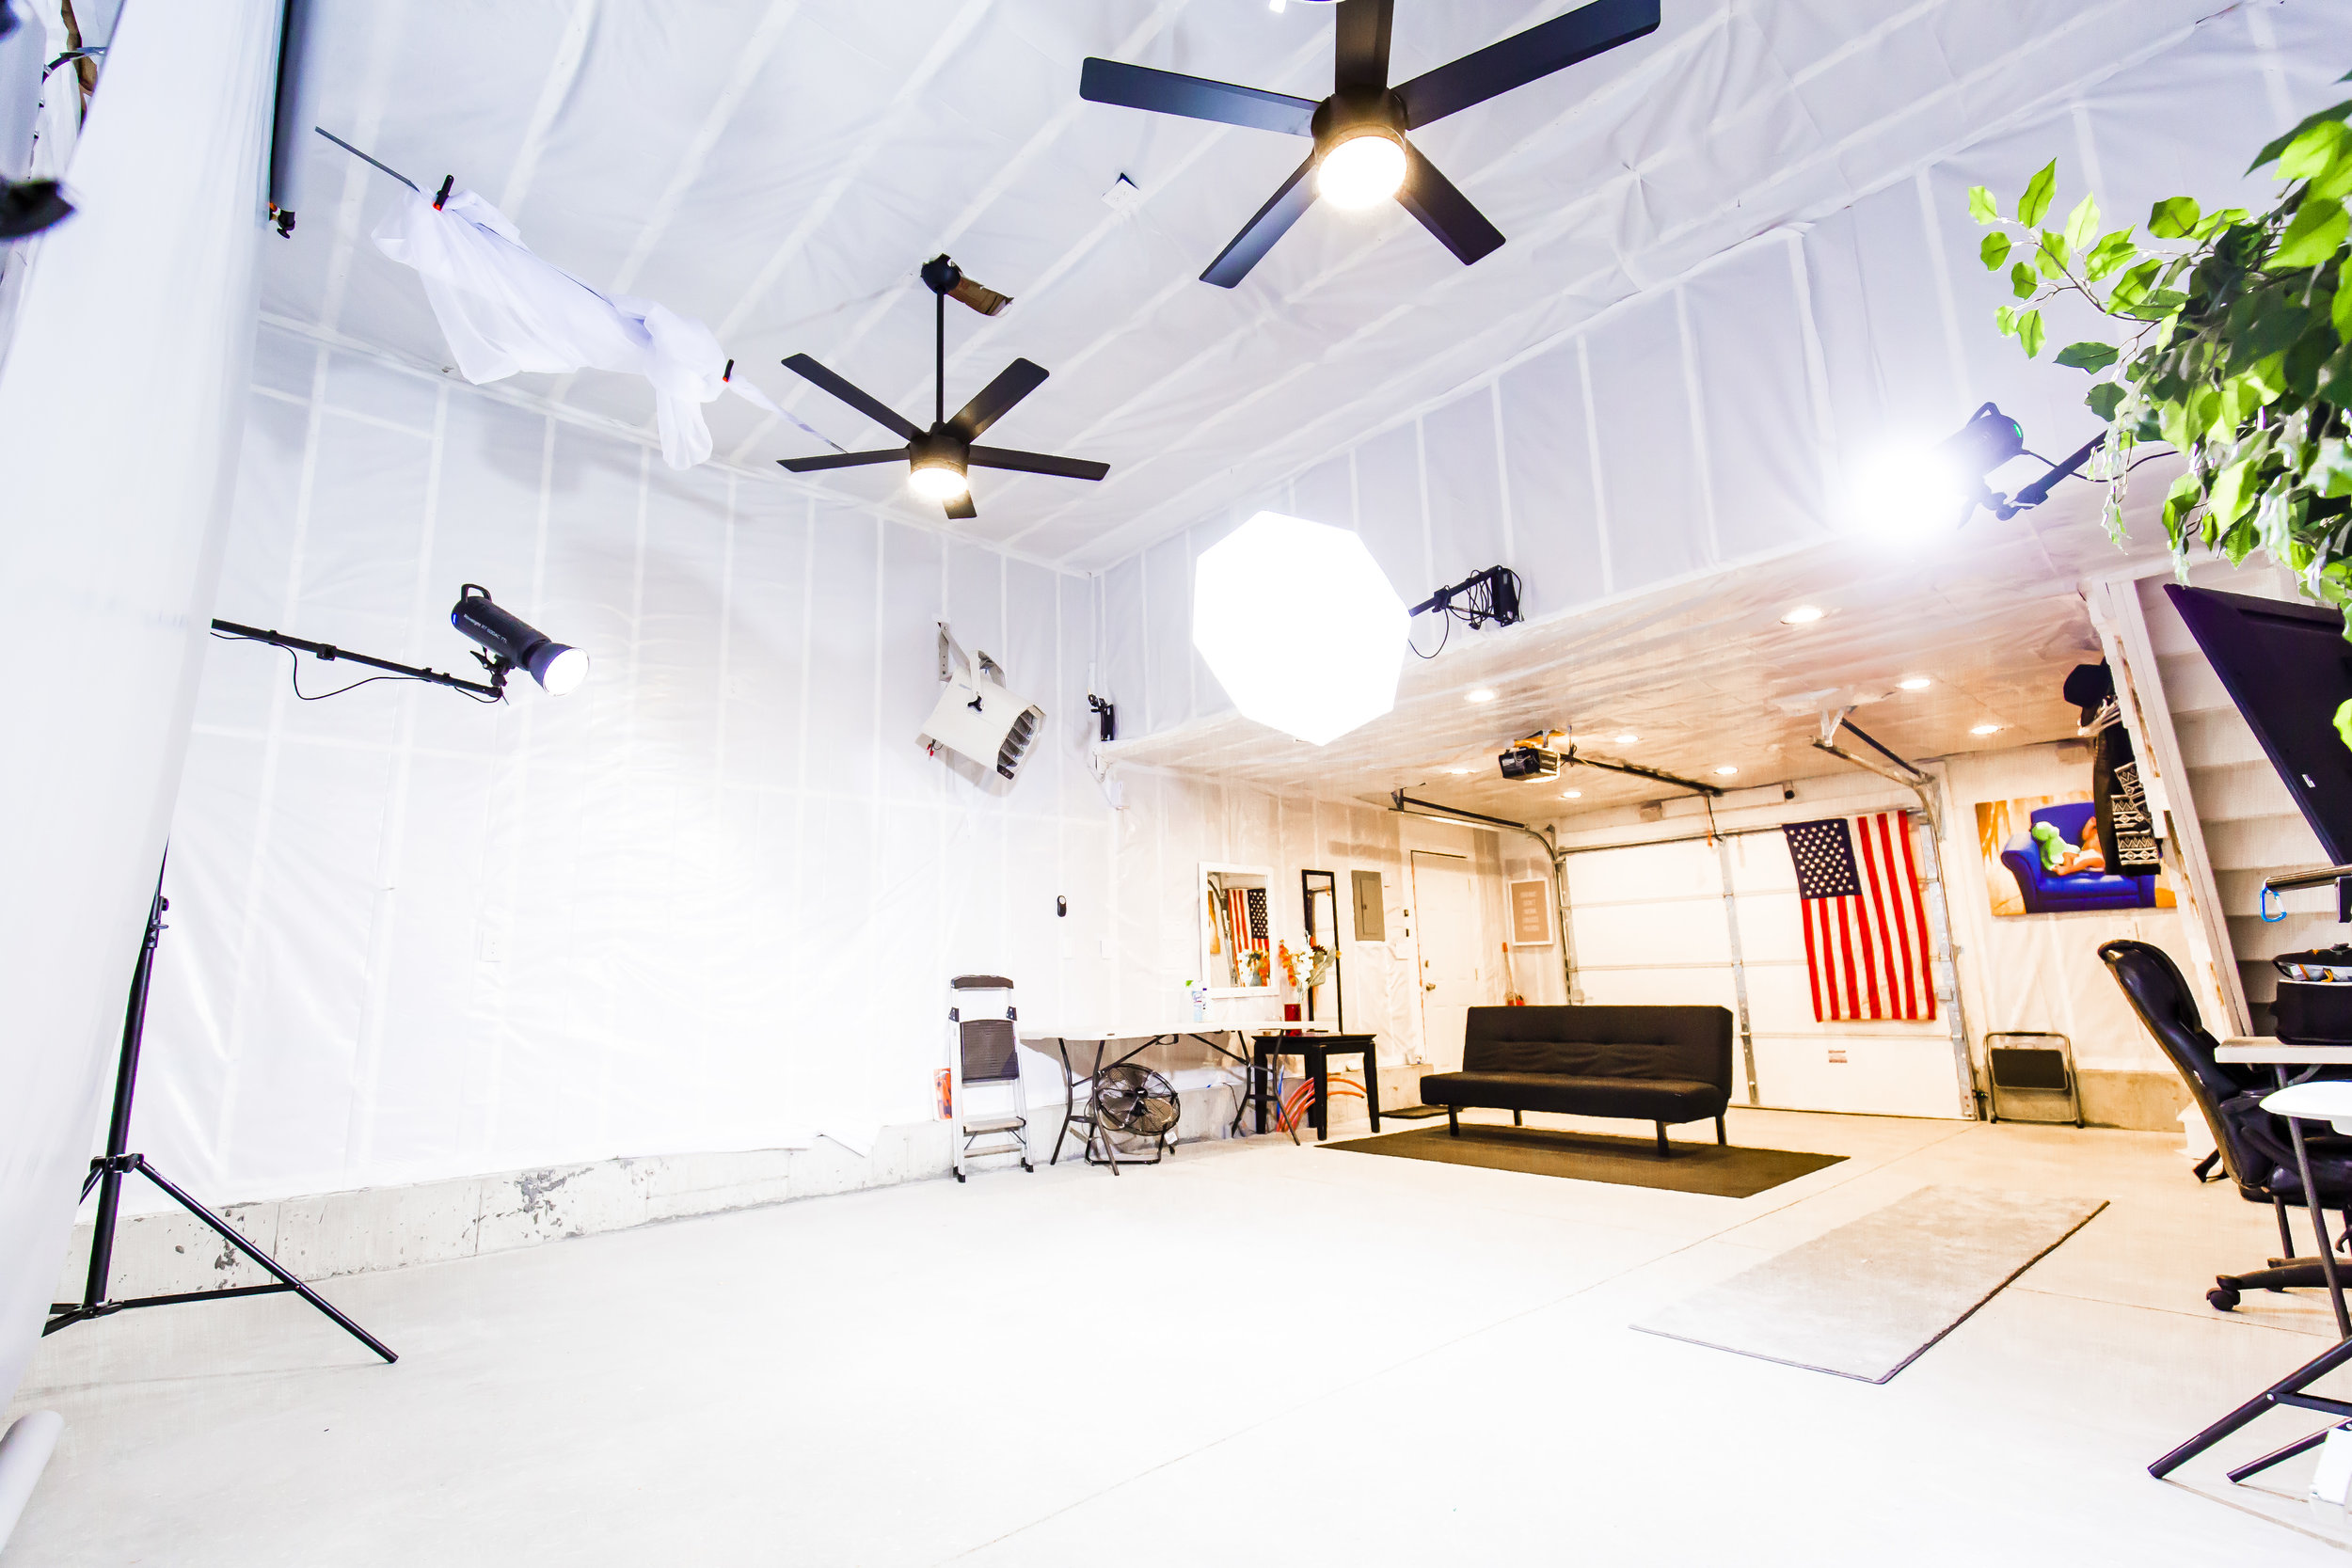 314A1187-Boston Studio Rental-Photography - Videography - Film - Event space - Affordable.jpg